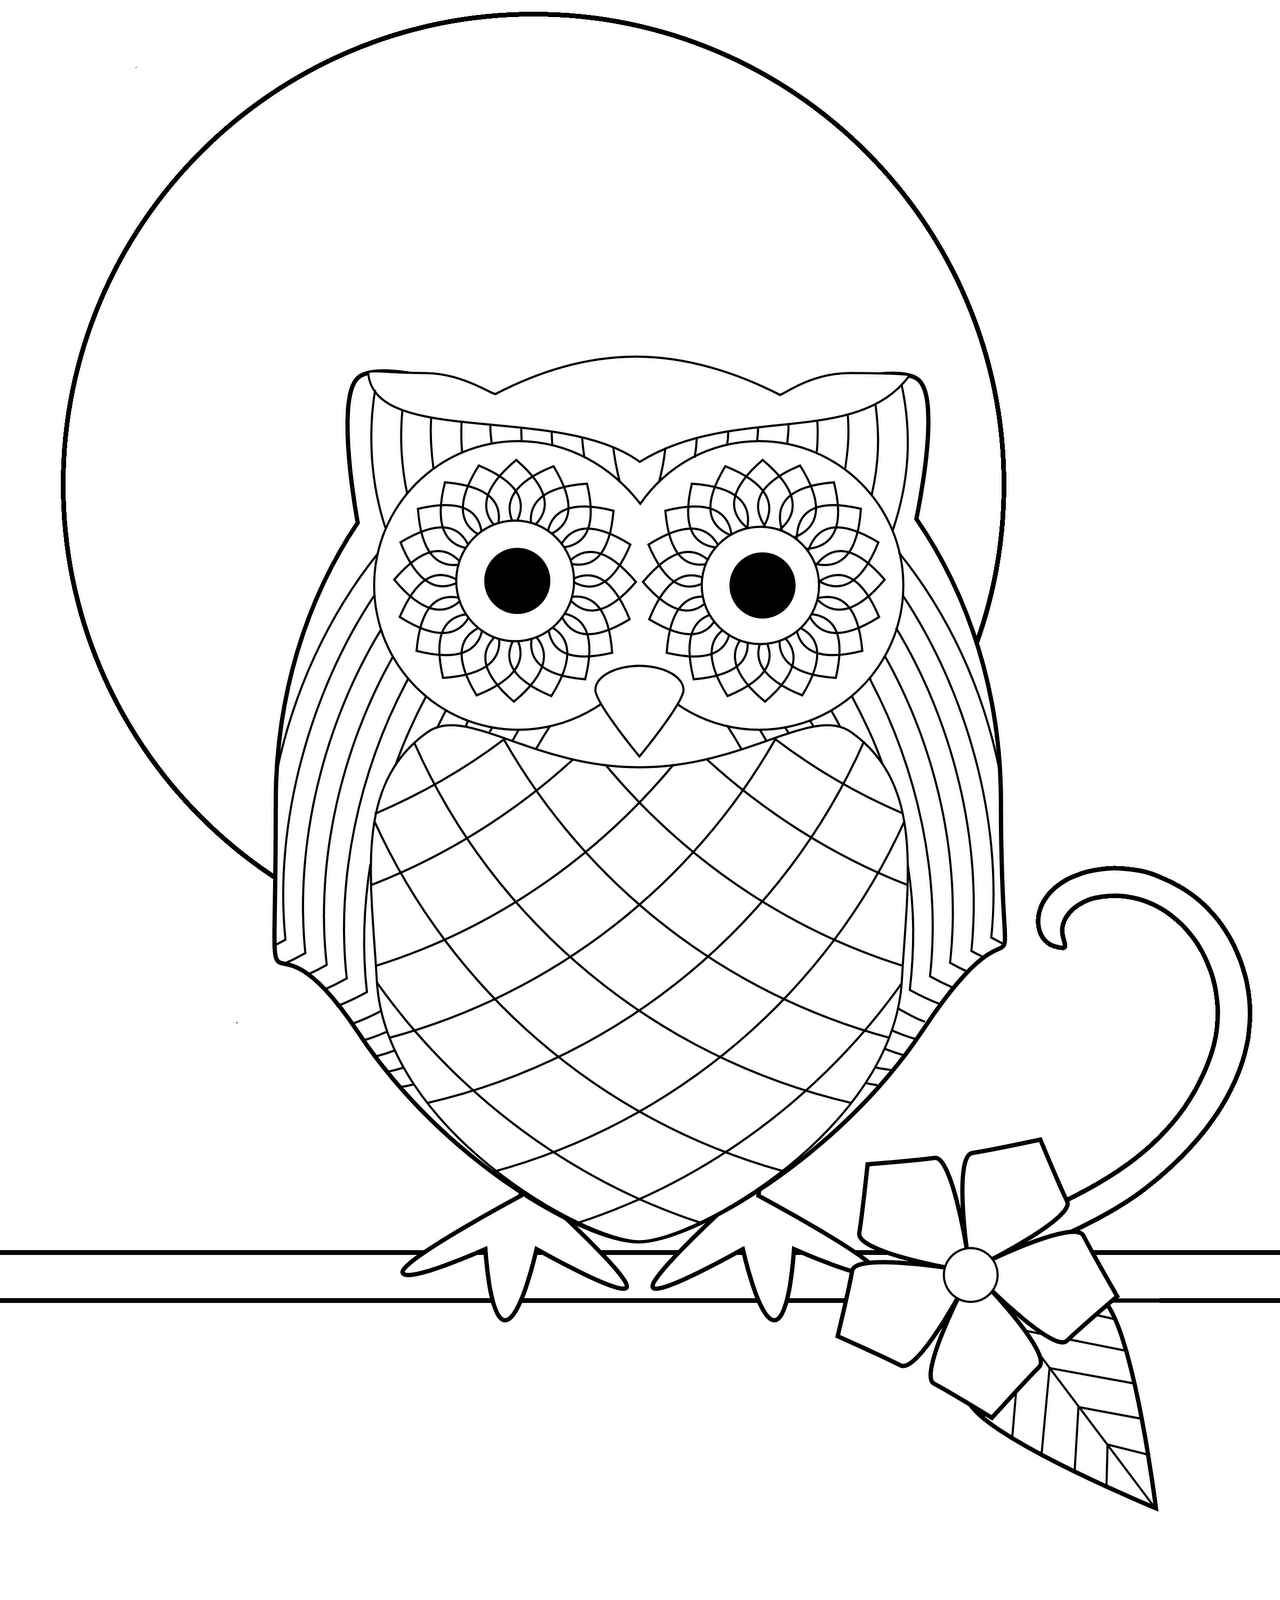 cute owl printable coloring pages your kiddos will love coloring